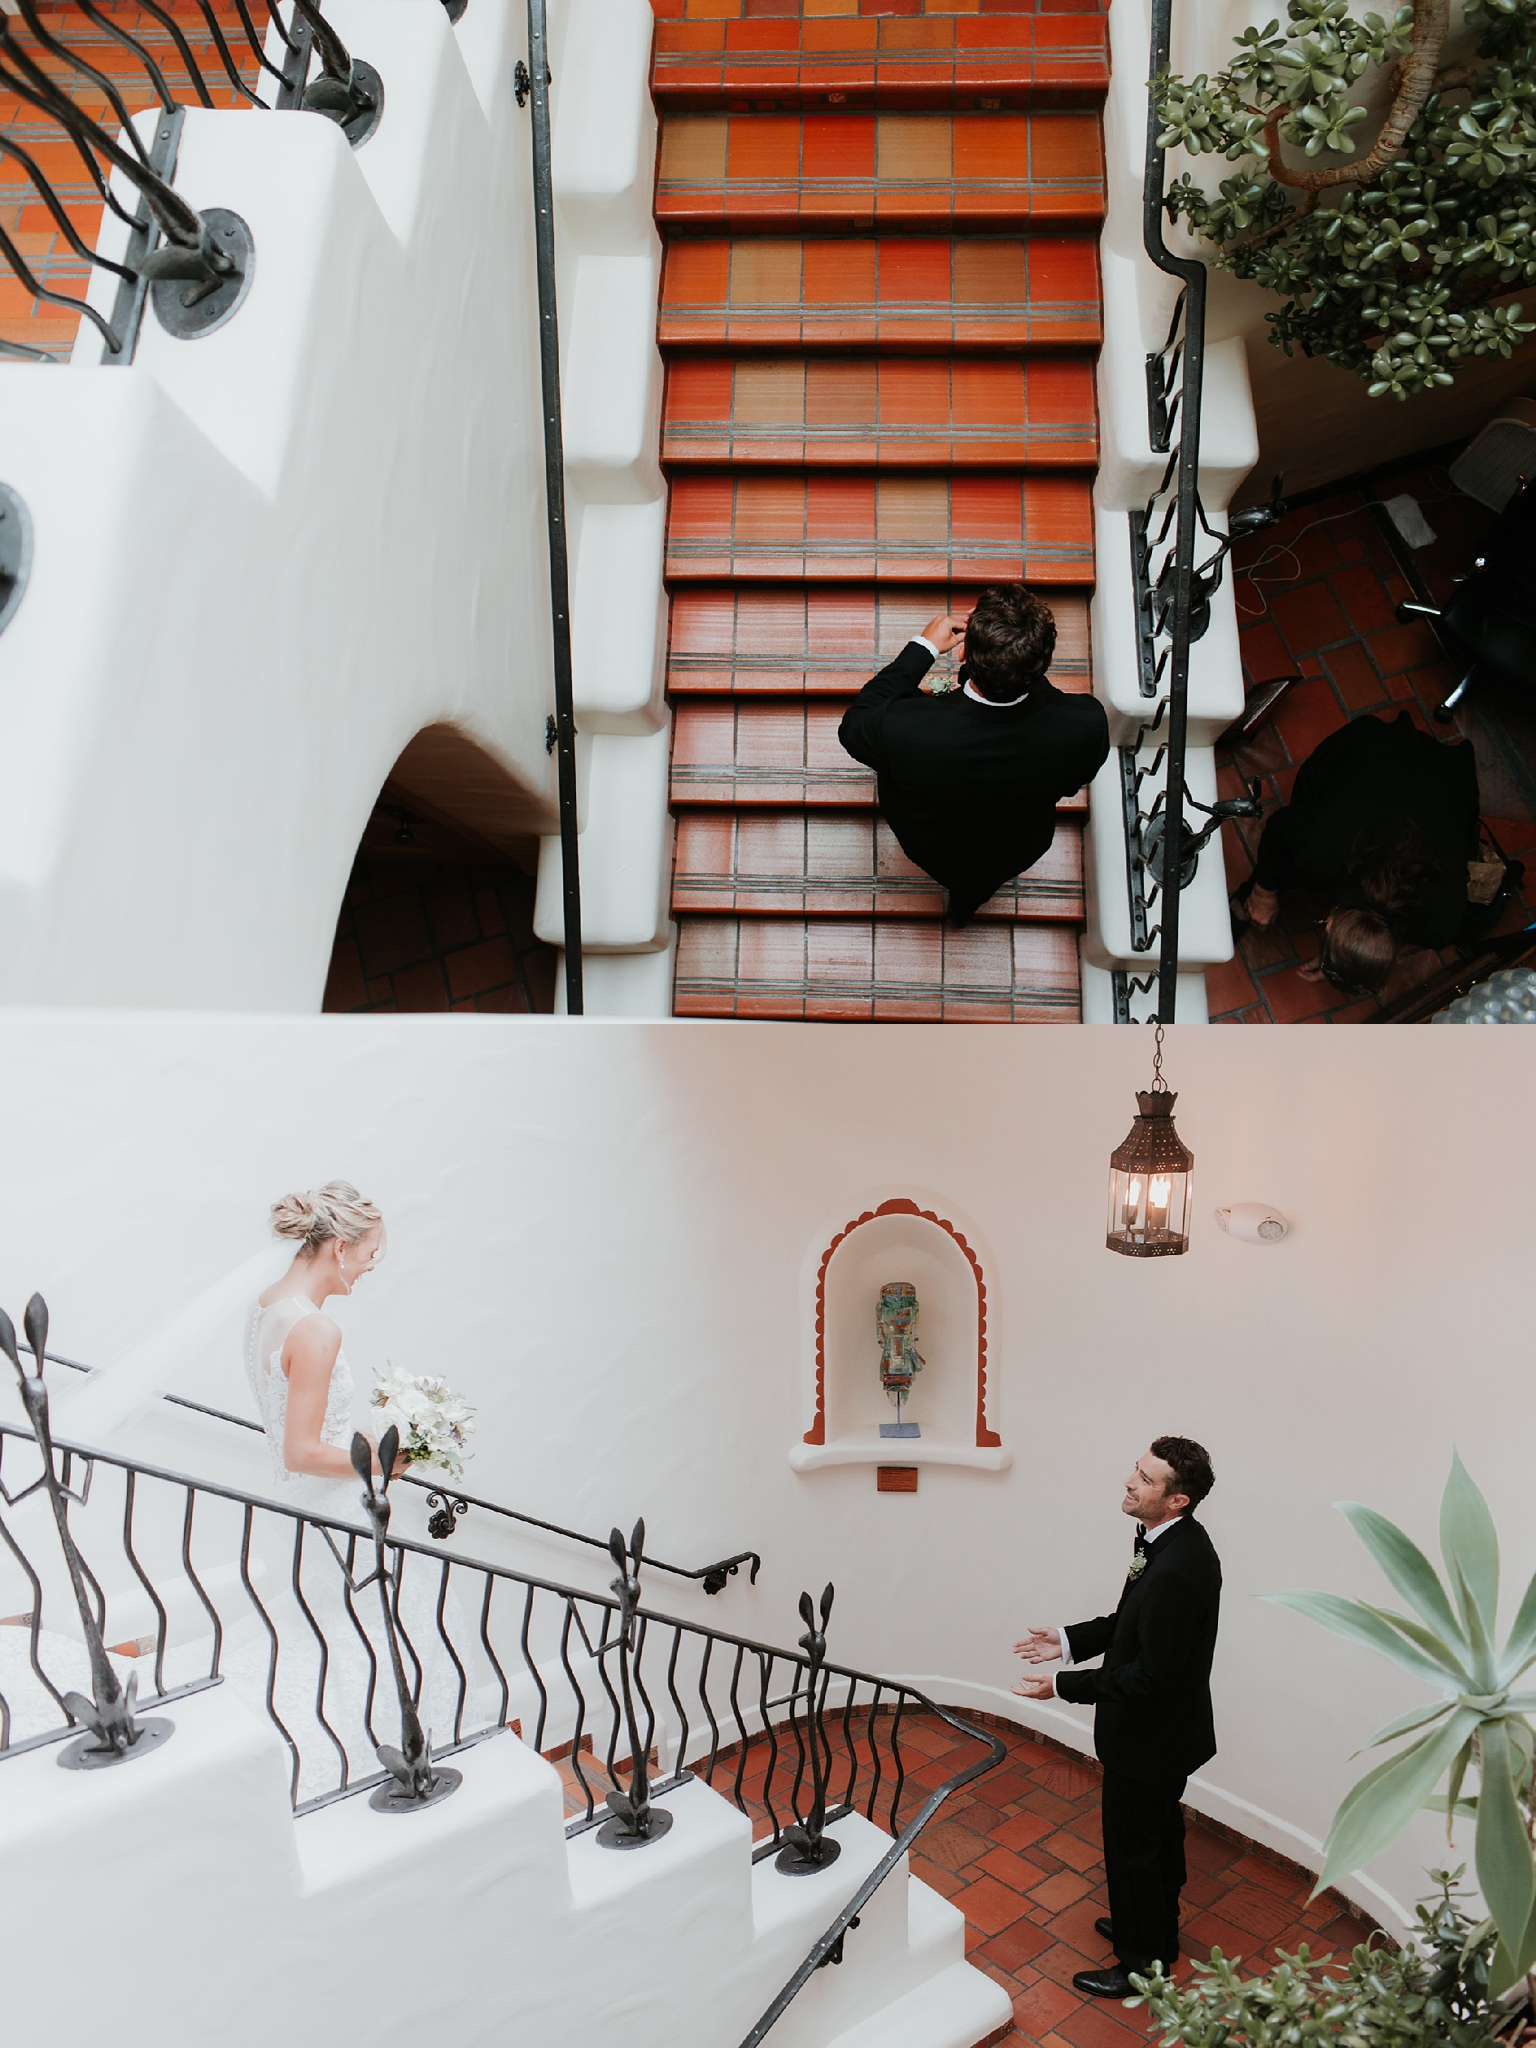 Alicia+lucia+photography+-+albuquerque+wedding+photographer+-+santa+fe+wedding+photography+-+new+mexico+wedding+photographer+-+new+mexico+wedding+-+engagement+-+santa+fe+wedding+-+la+fonda+on+the+plaza+-+la+fonda+wedding_0028.jpg